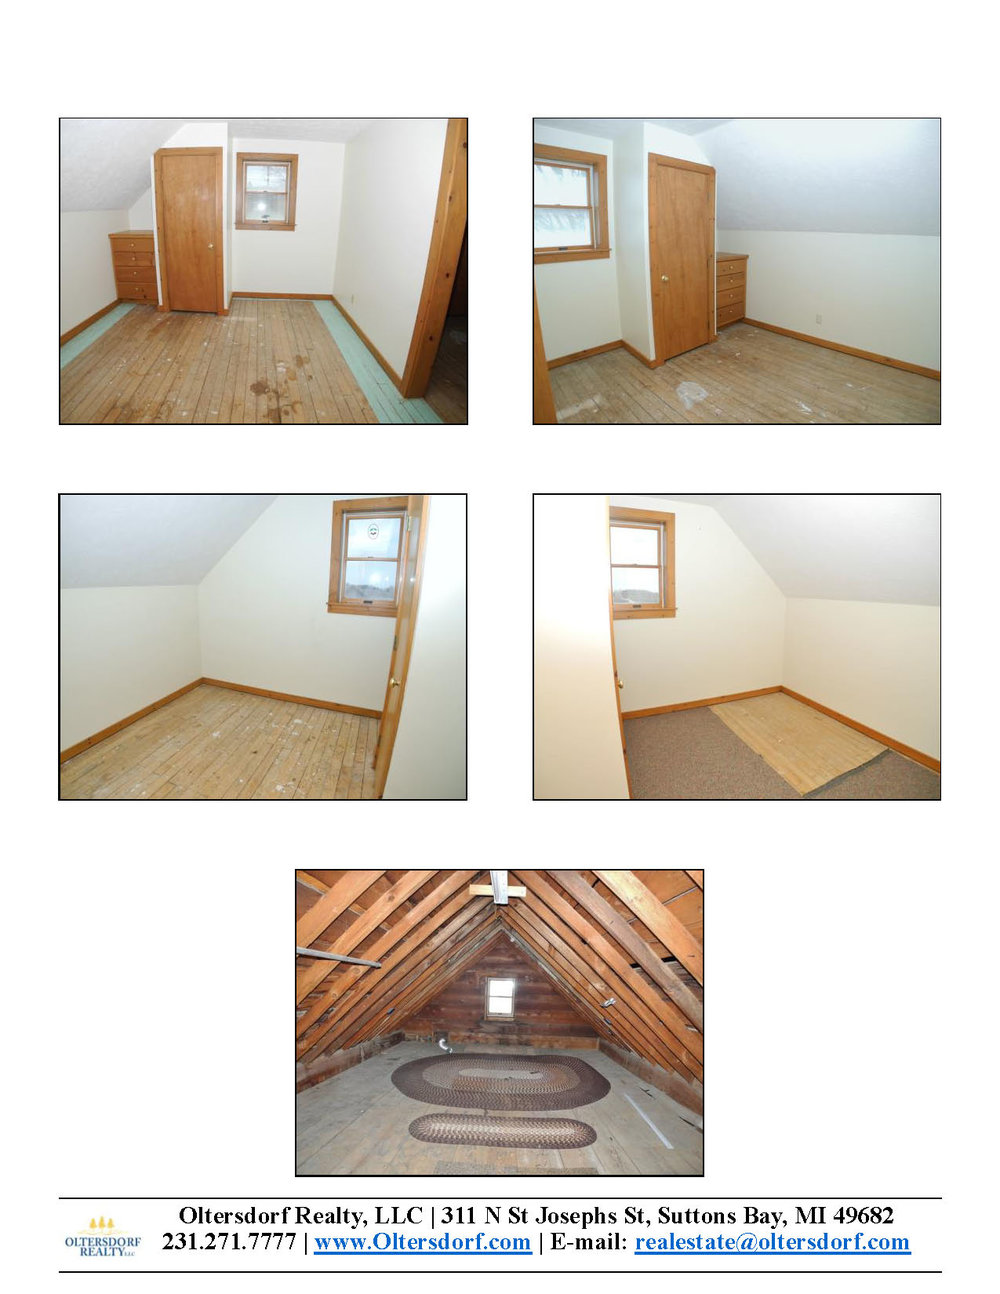 910 S Popp Road, Lake Leelanau - For sale by Oltersdorf Realty LLC (photo pages)_Page_08.jpg